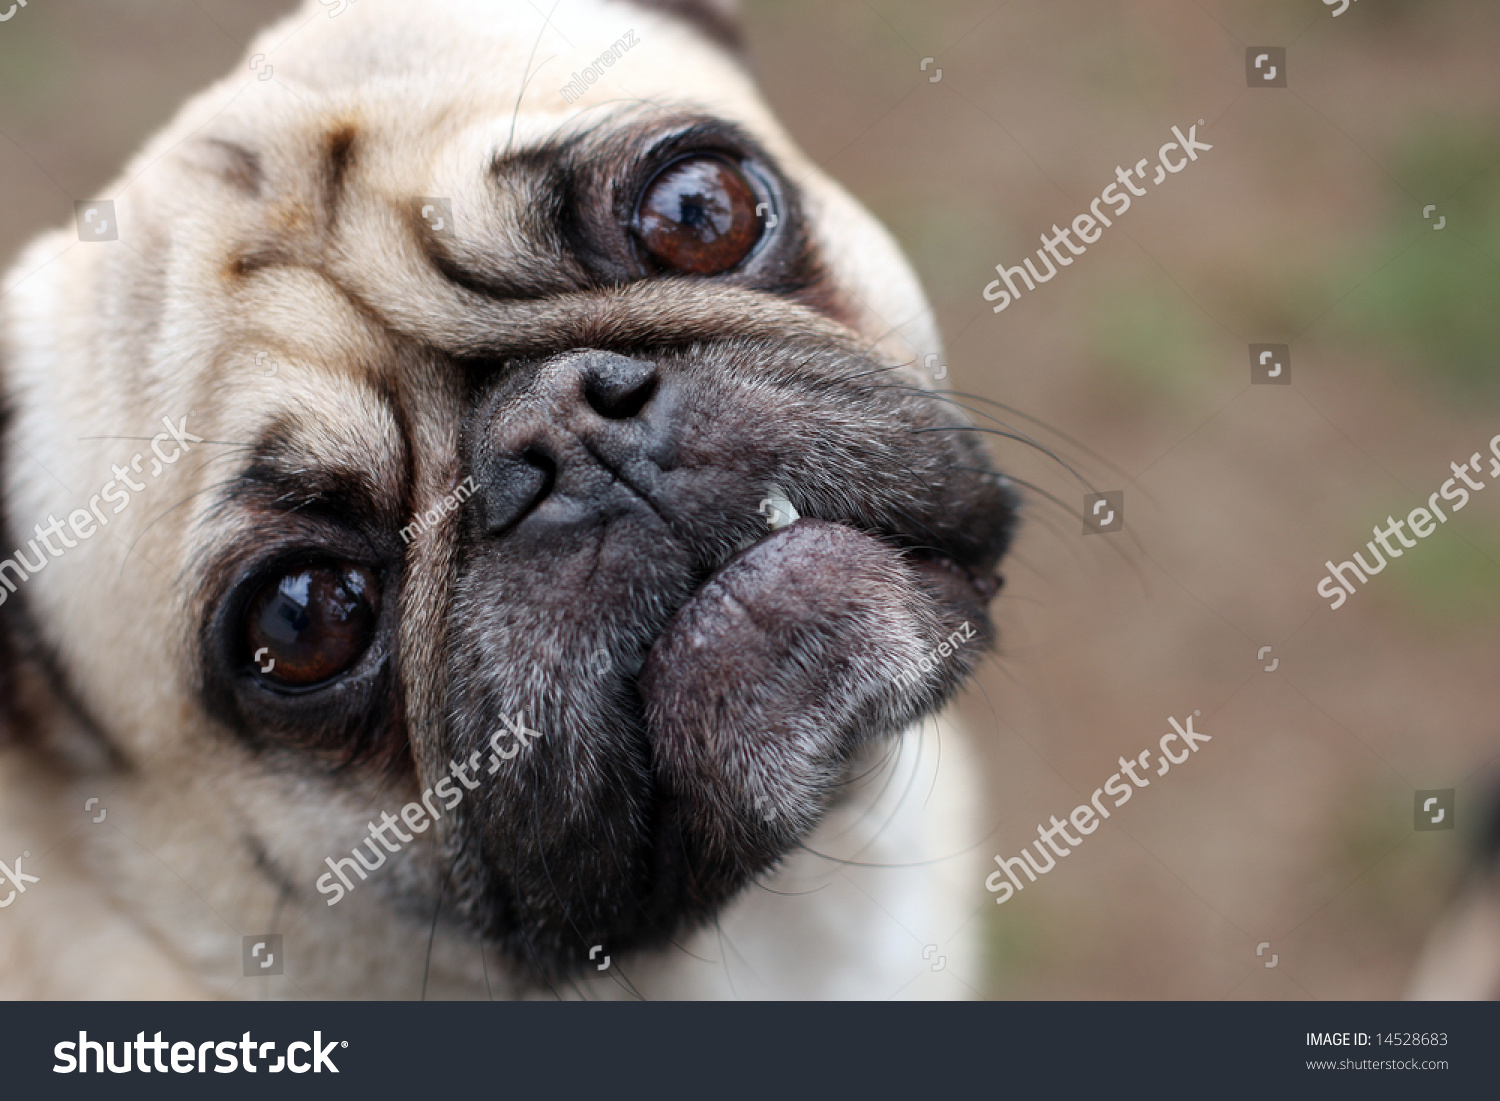 Pug Making A Funny Face. Stock Photo 14528683 : Shutterstock